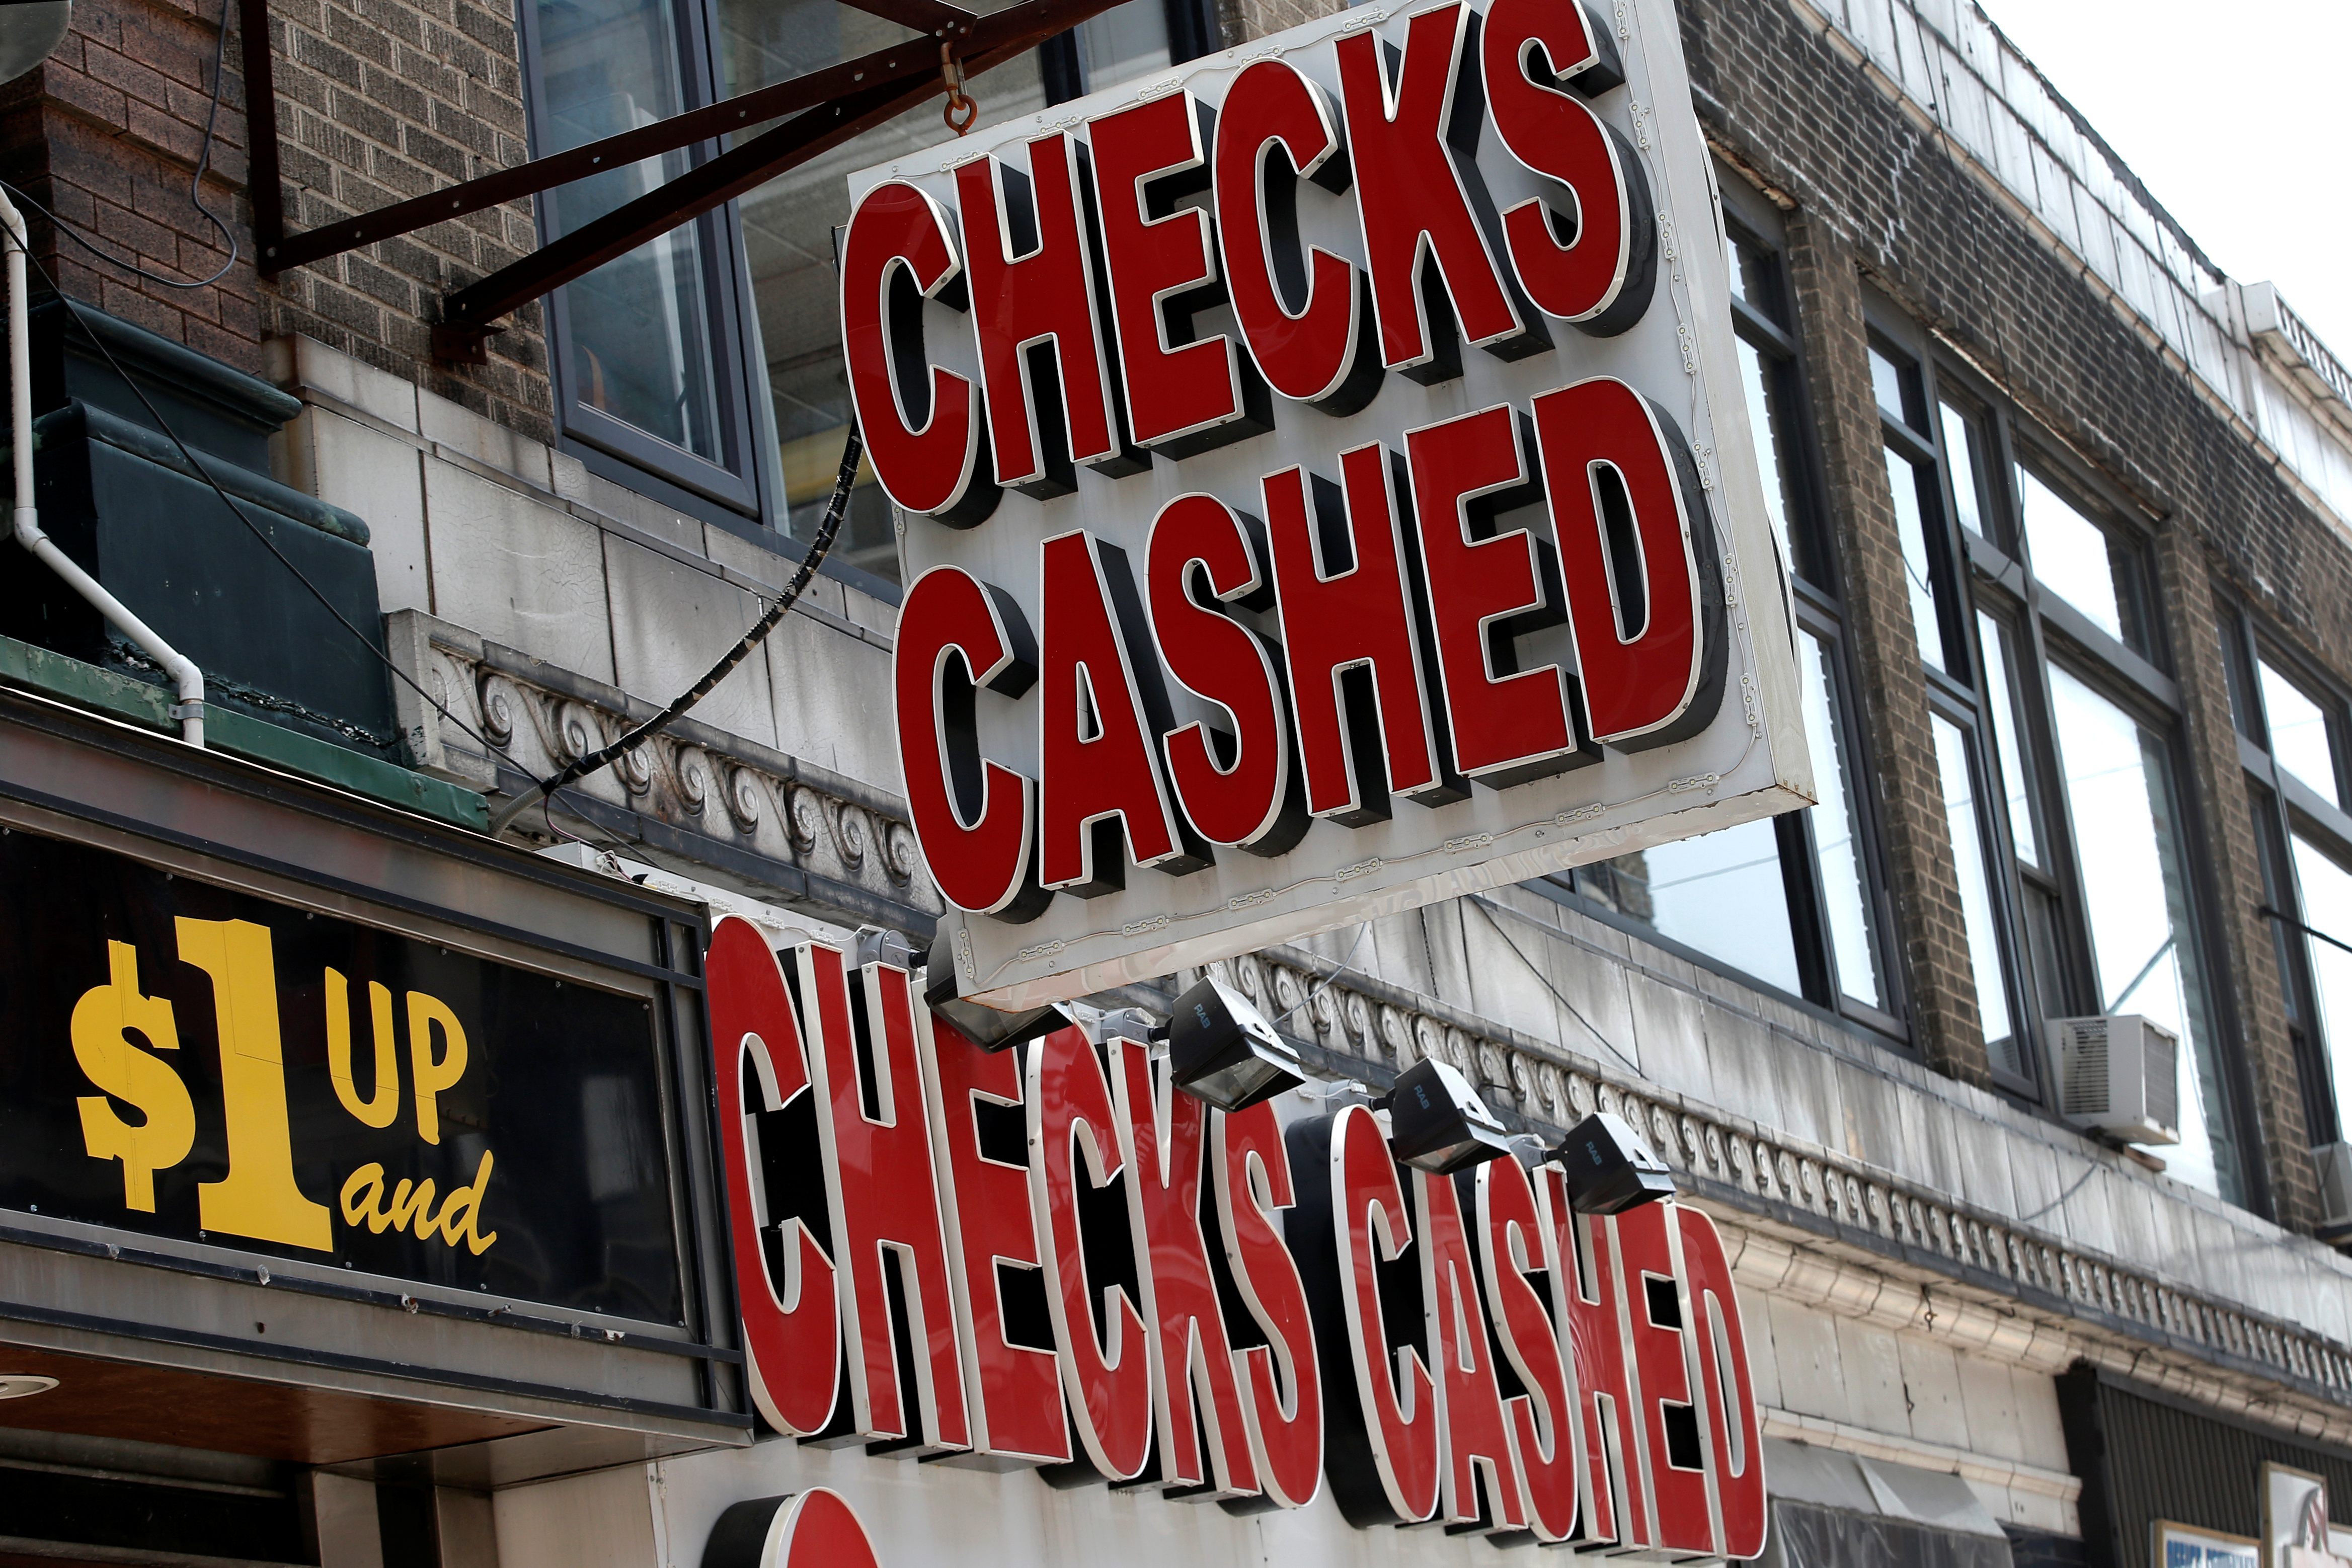 A sign is seen above a check cashing and loan shop in Jersey City.